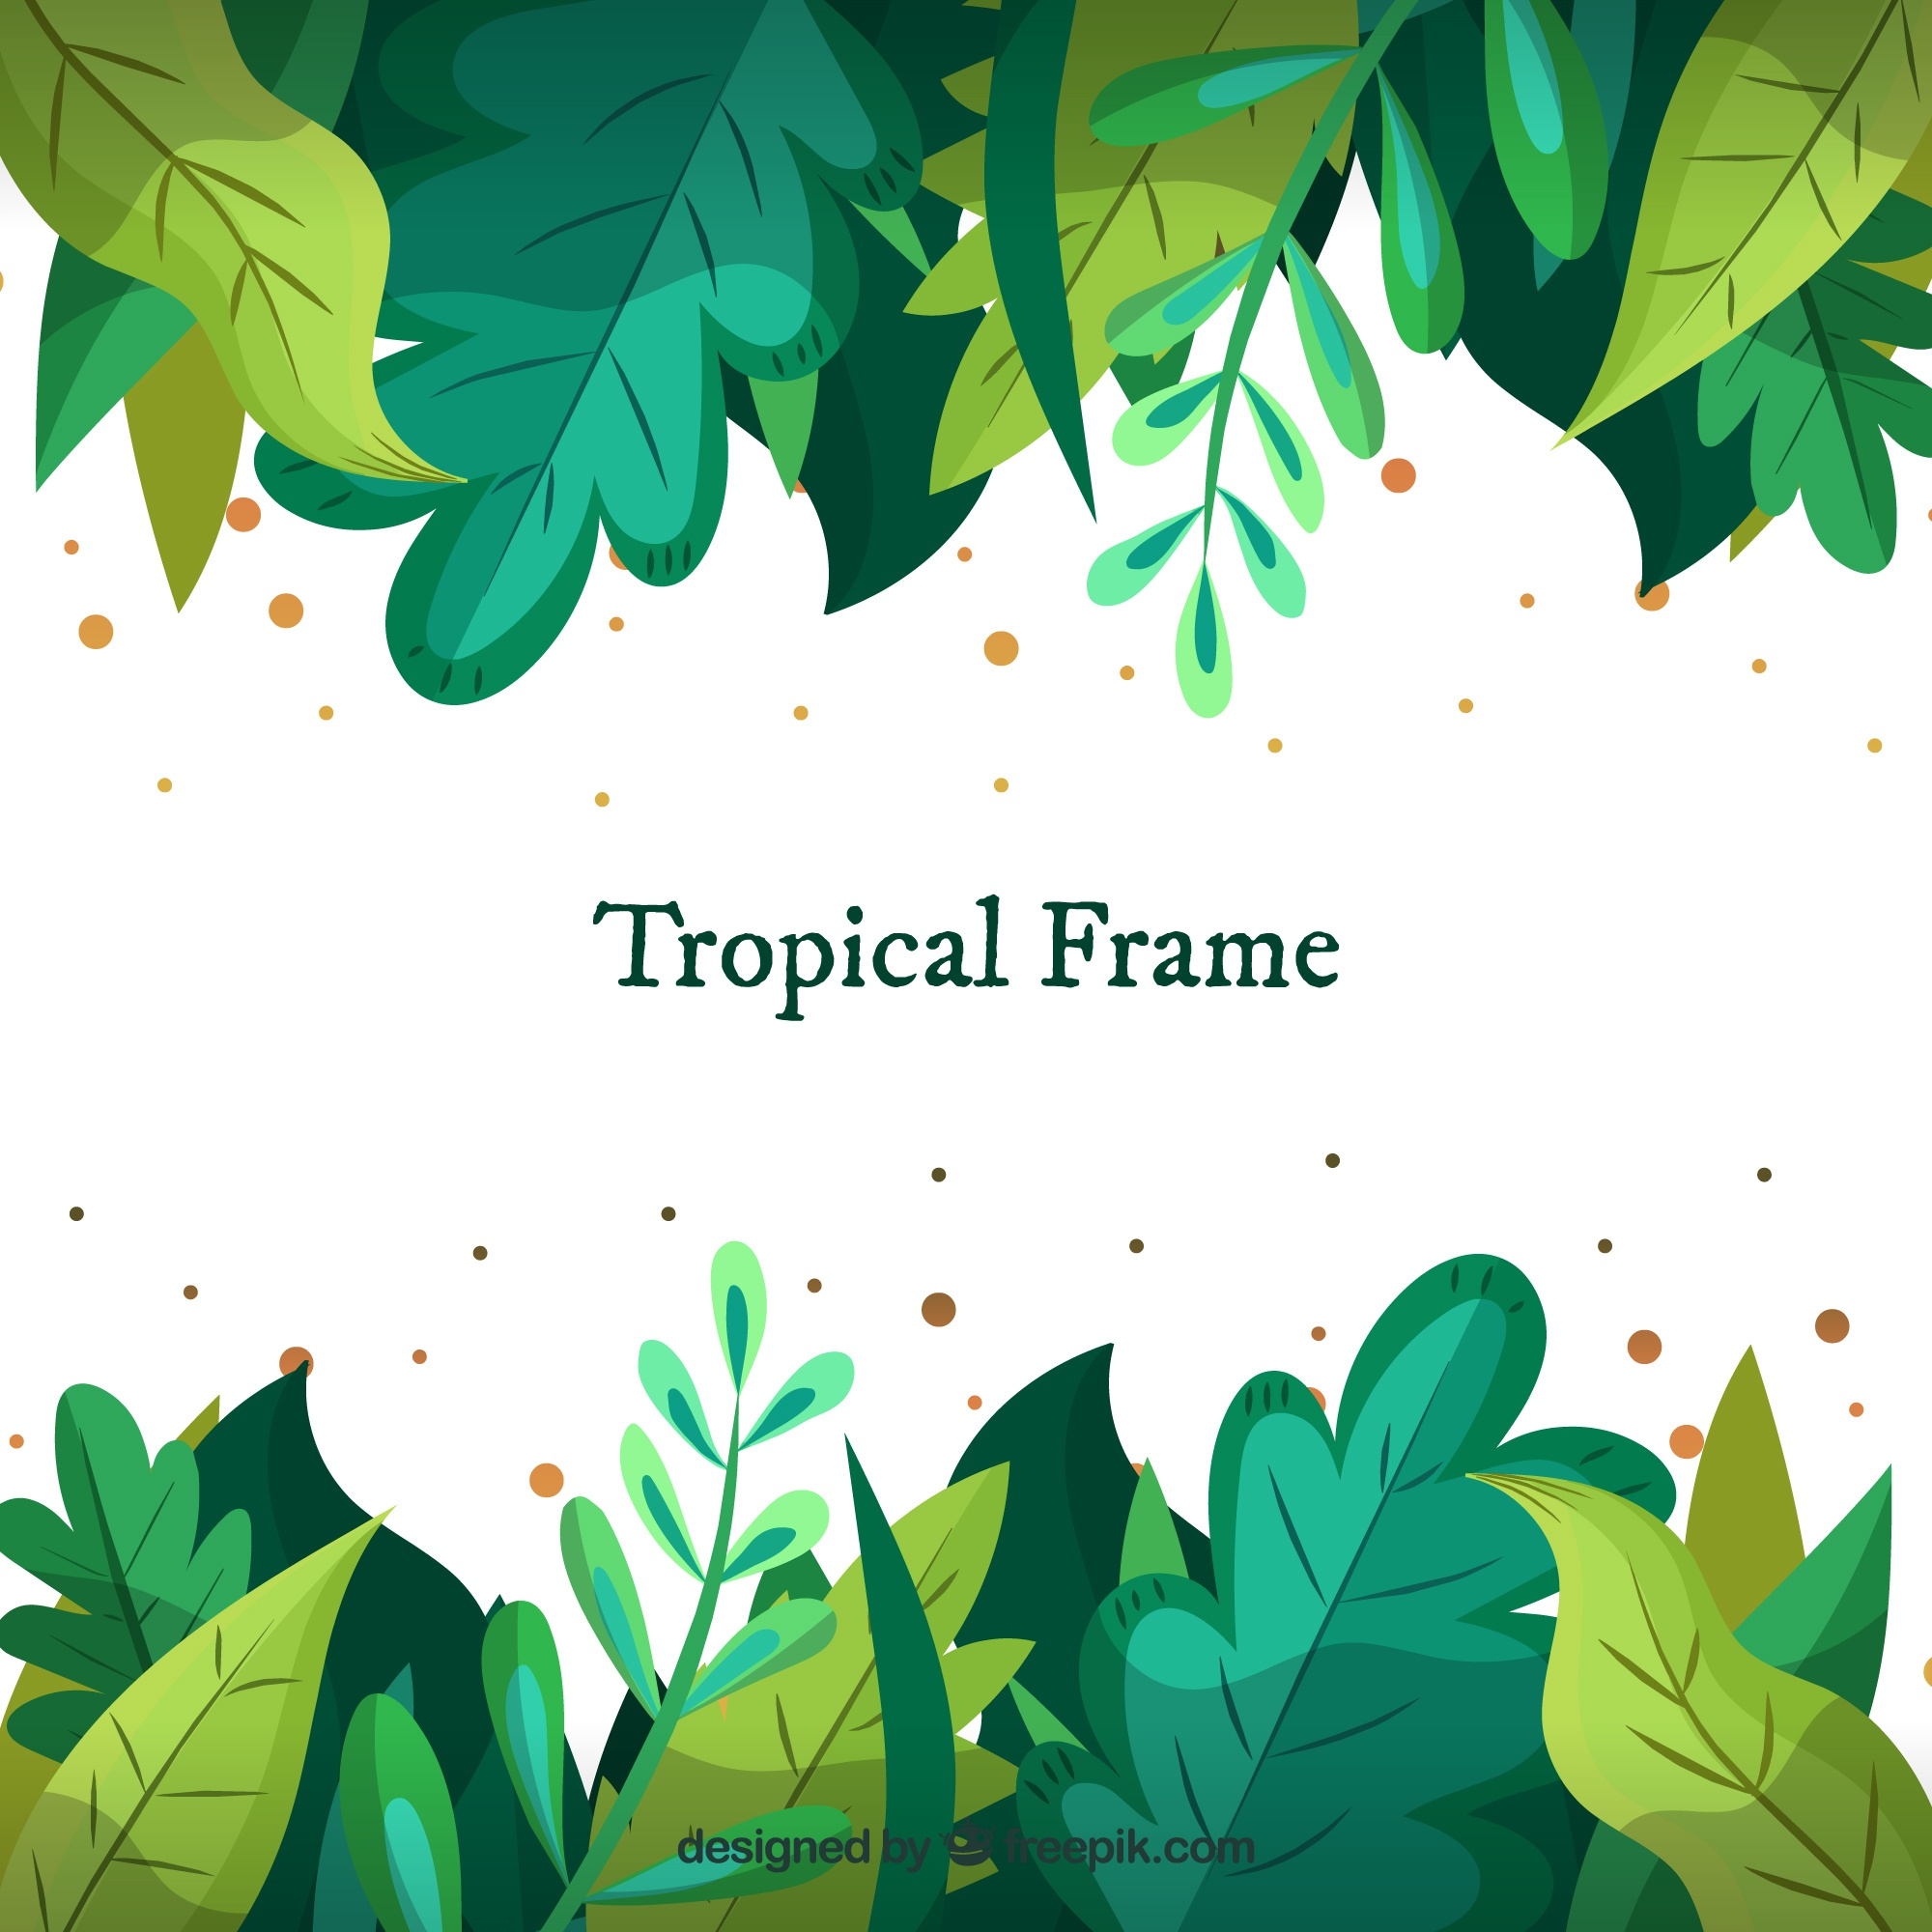 Tropical frame with different leaves